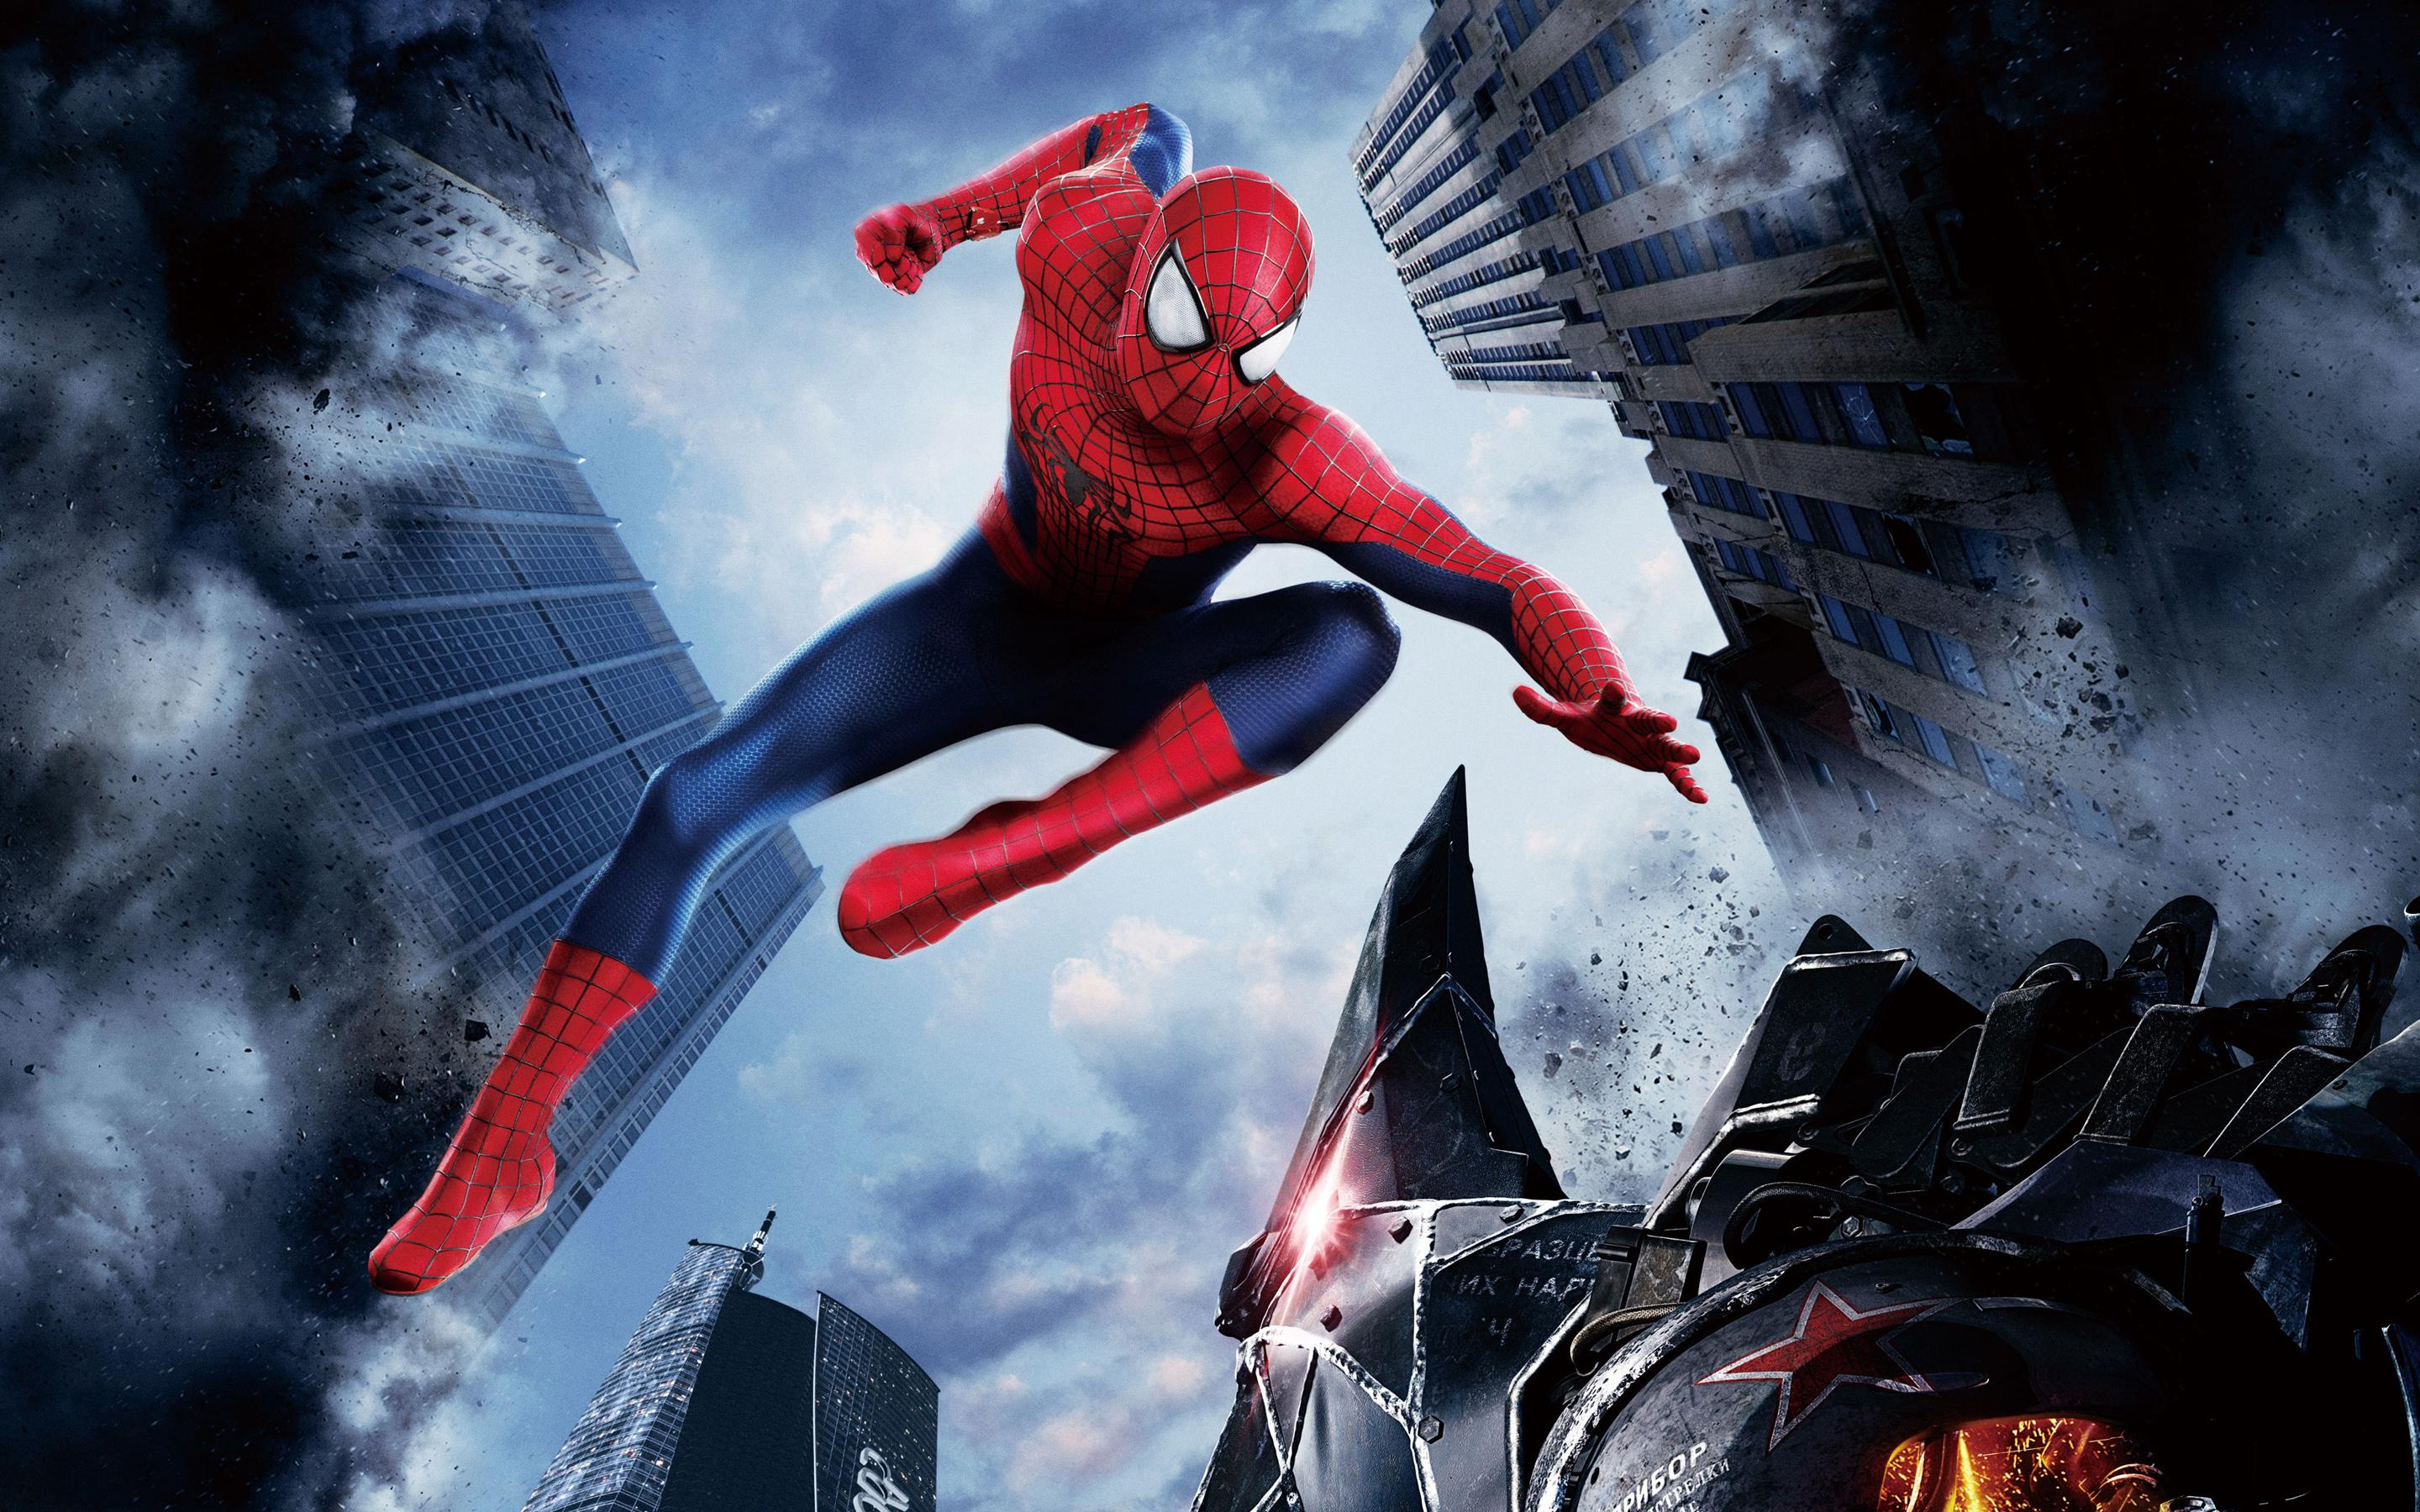 HD The Amazing Spider Man 2 2014 Movie Wallpapers   Fullsize Wallpaper 2880x1800